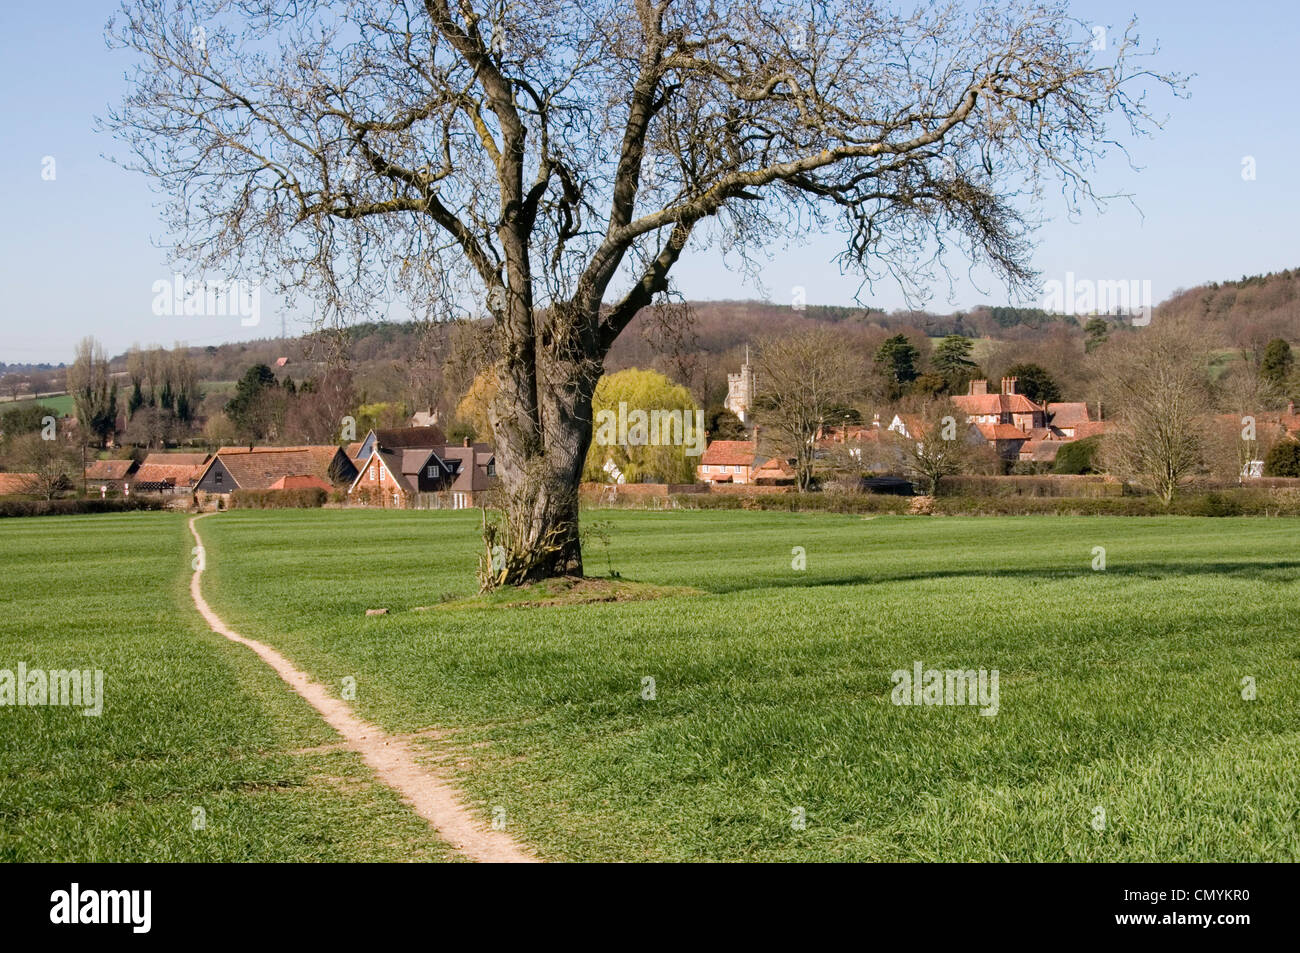 Bucks -Chiltern Hills - Little Missenden - view to the village - from footpath across fields - early spring sunshine - Stock Image